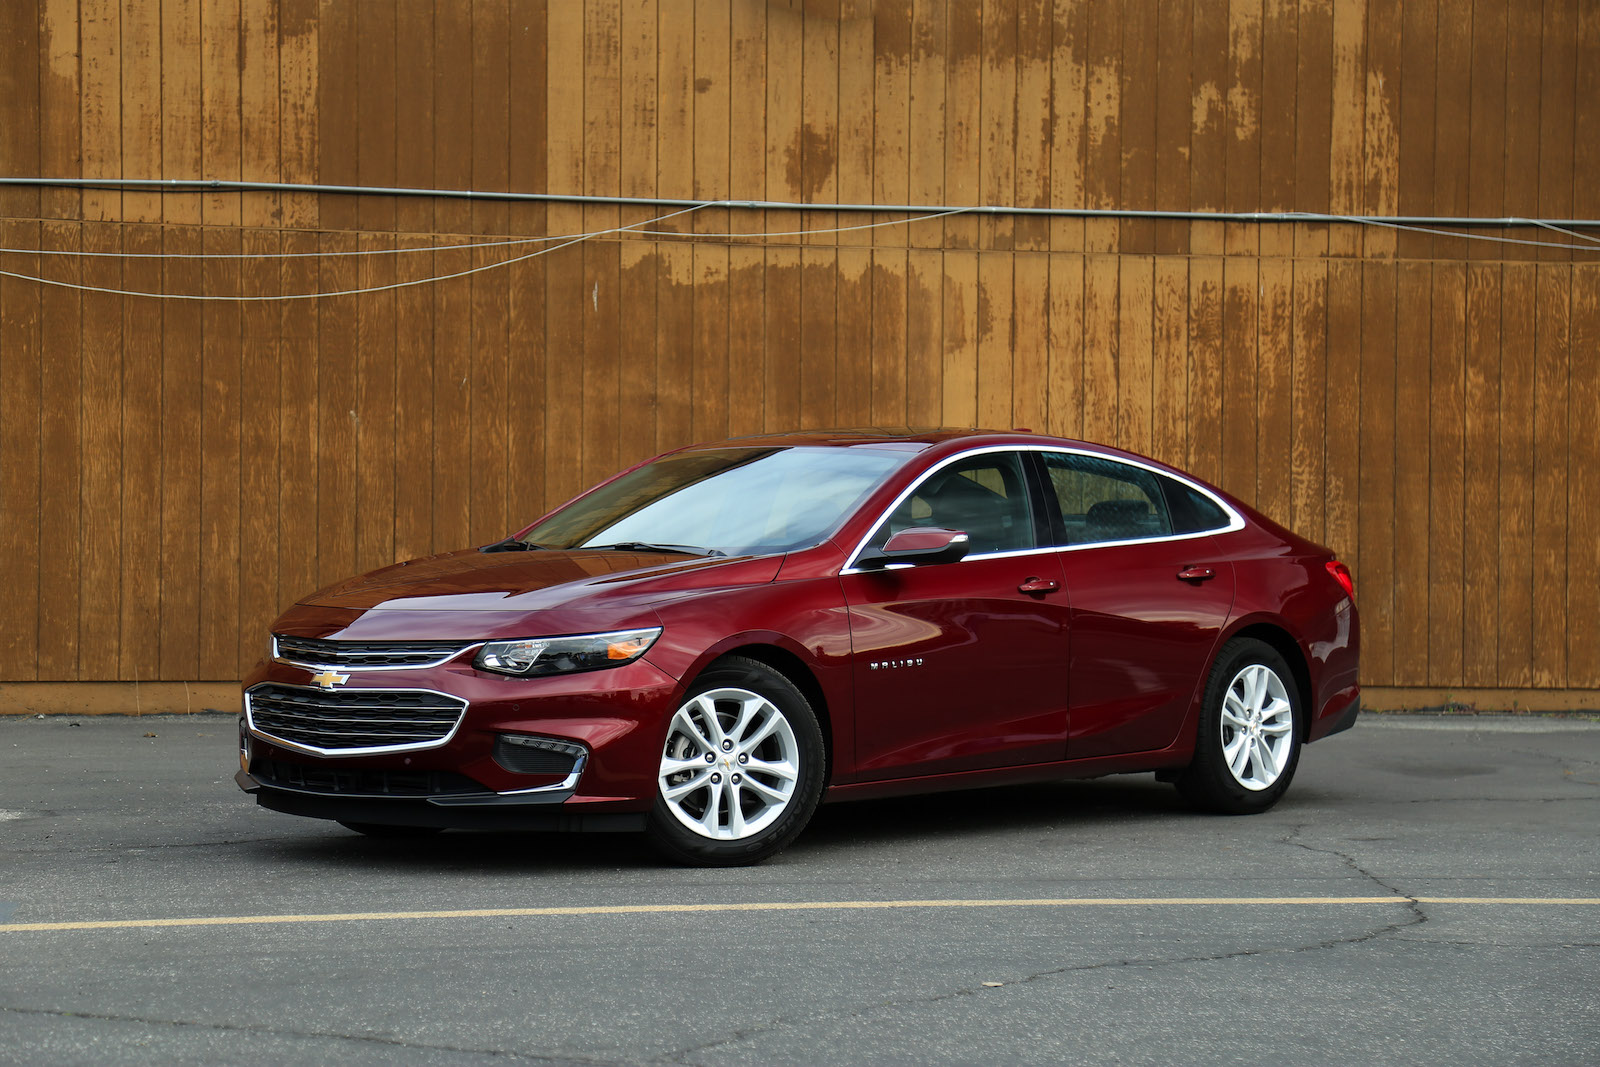 chevrolet news first ny dec hybrid malibu h catskill sedan system of using volt drive mountains